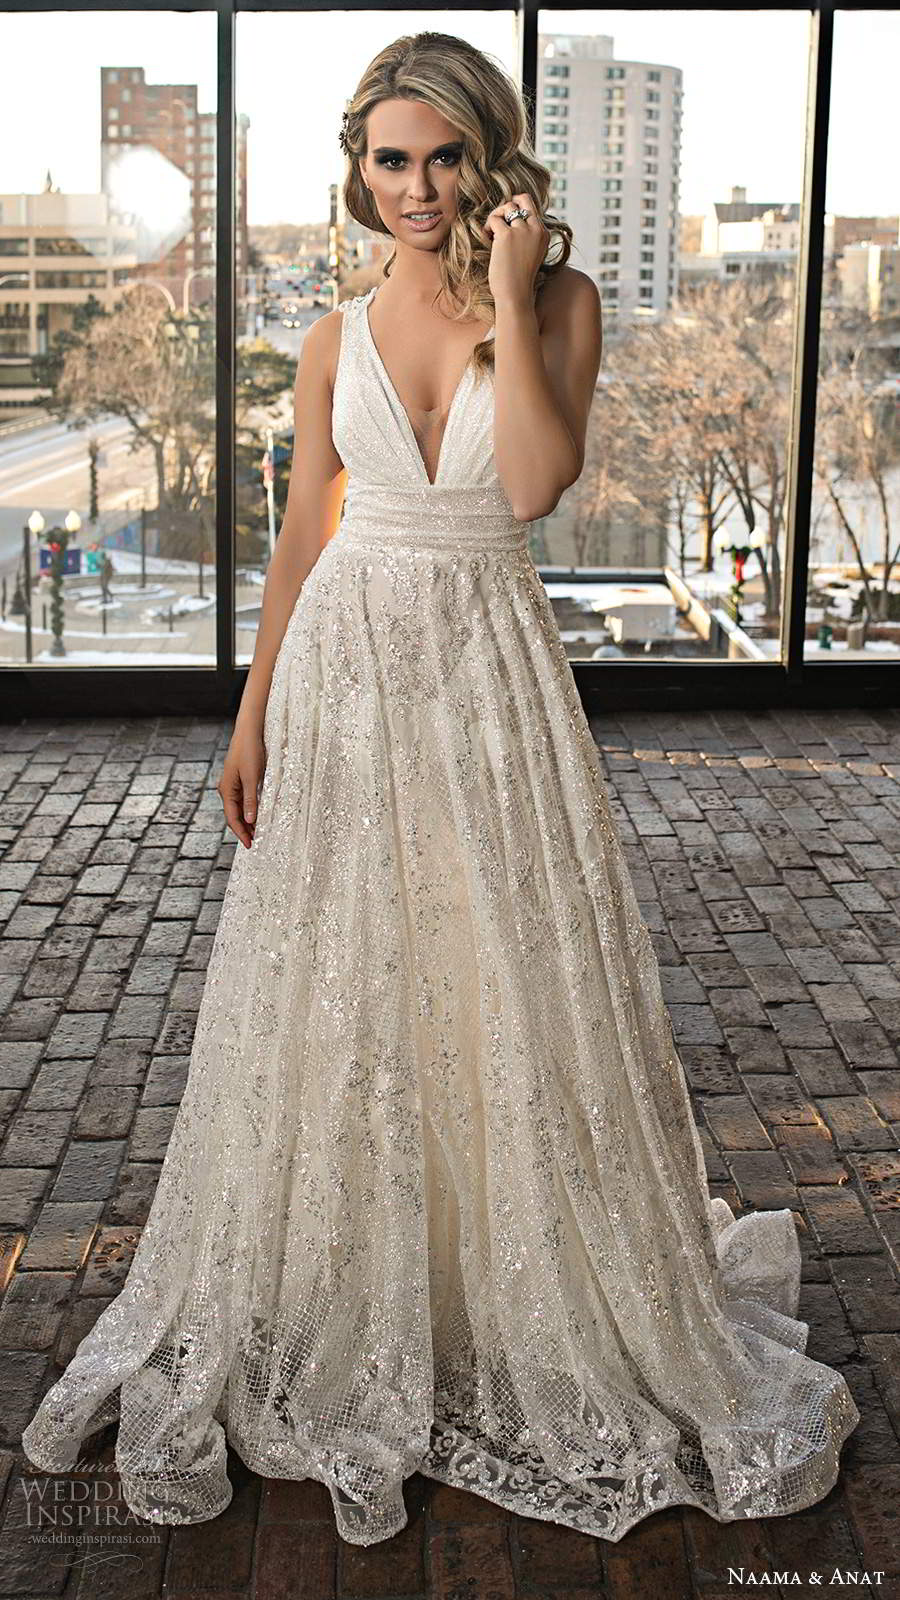 naama and anat 2020 silhouette bridal sleeveless thick straps plunging v neckline ruched bodice fully embellished a line ball gown wedding dress chapel train (6) mv